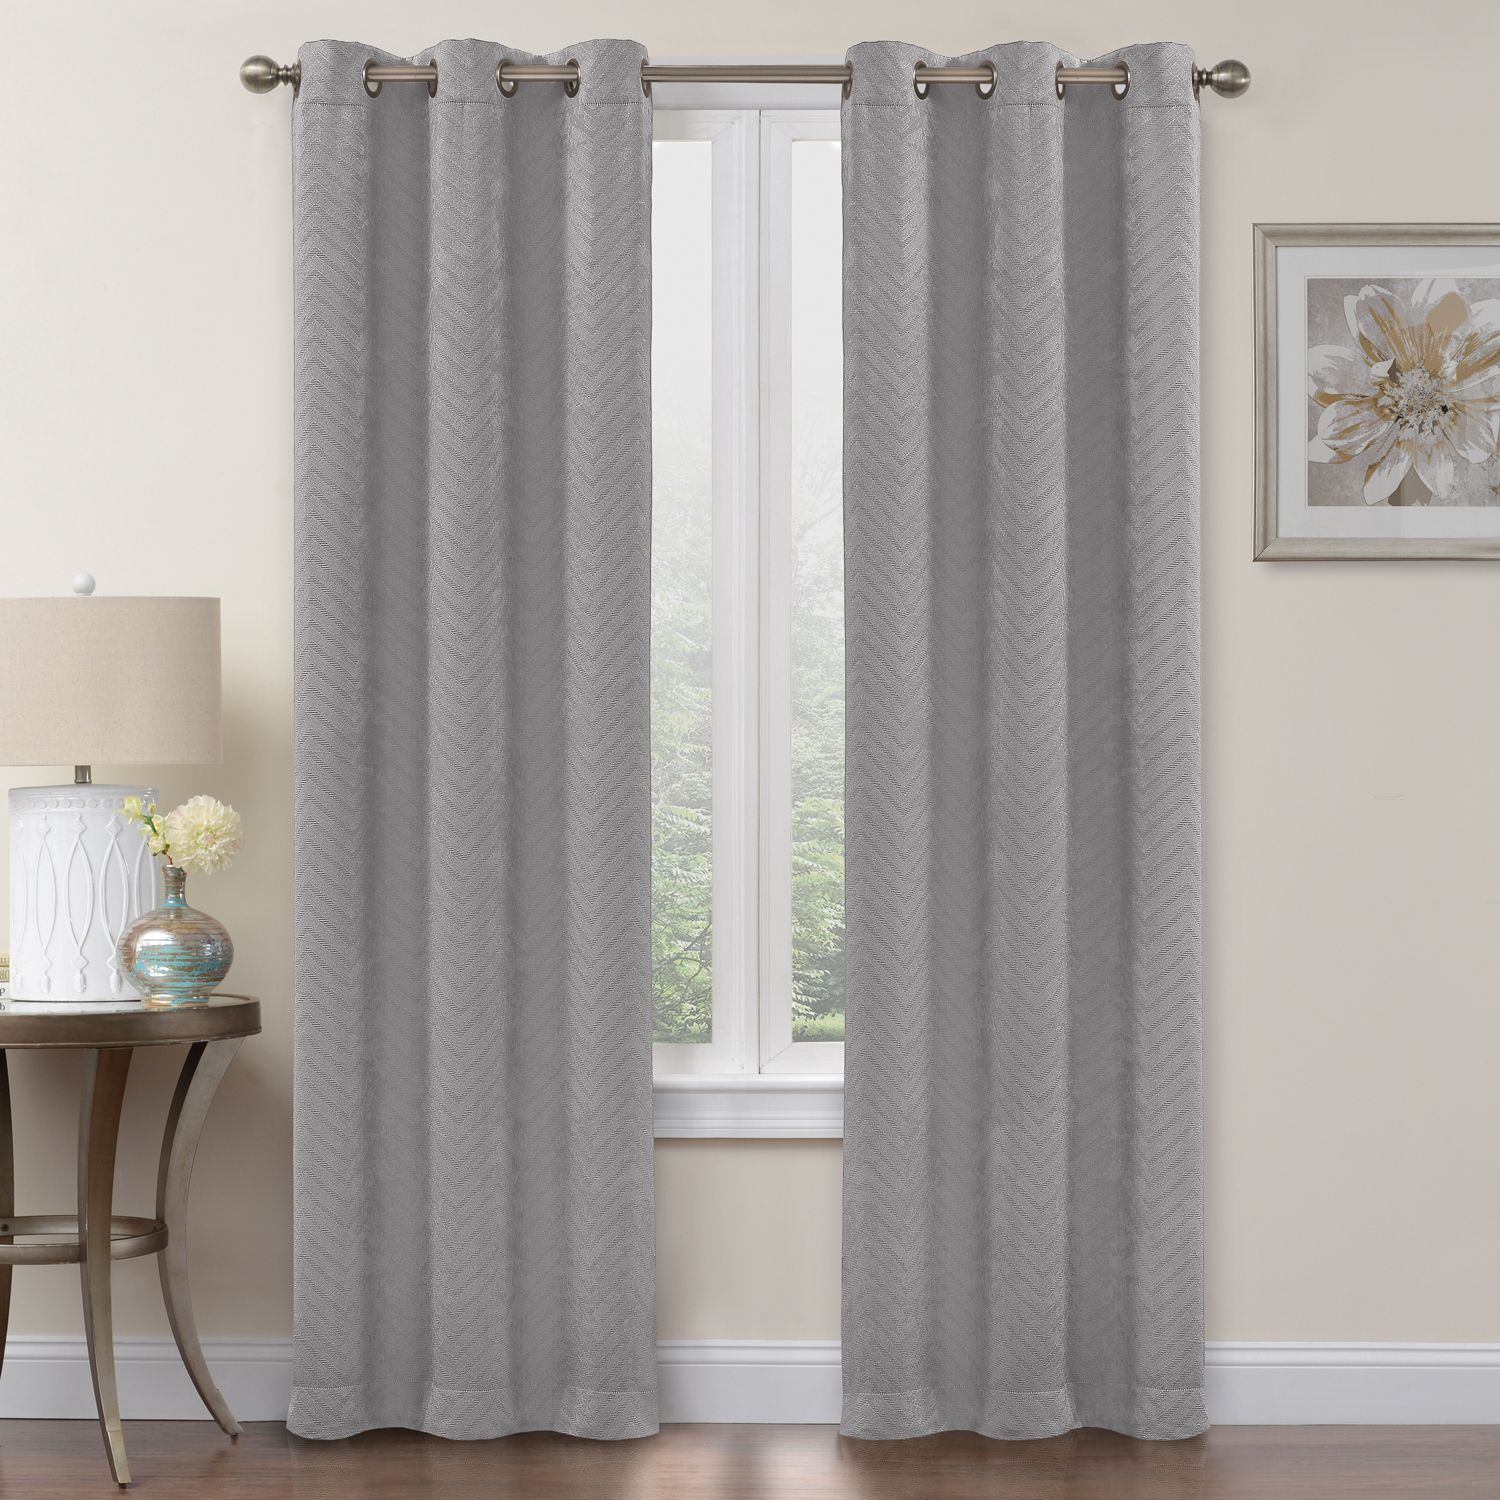 Regent Court 2 Pack Chevron Blackout Curtain